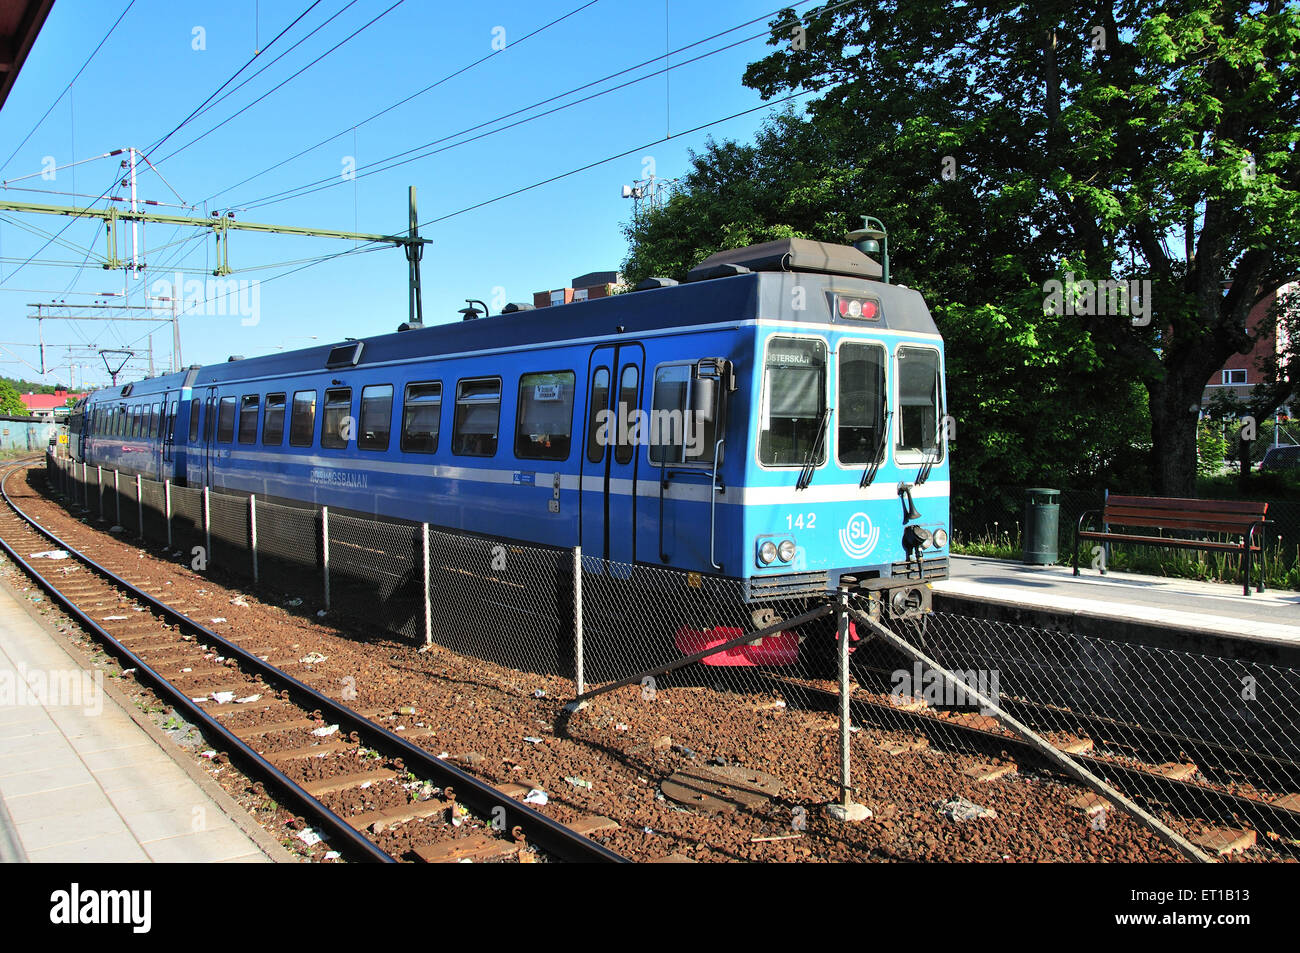 SL Suburban meter gauge train Stockholm Sweden - Stock Image